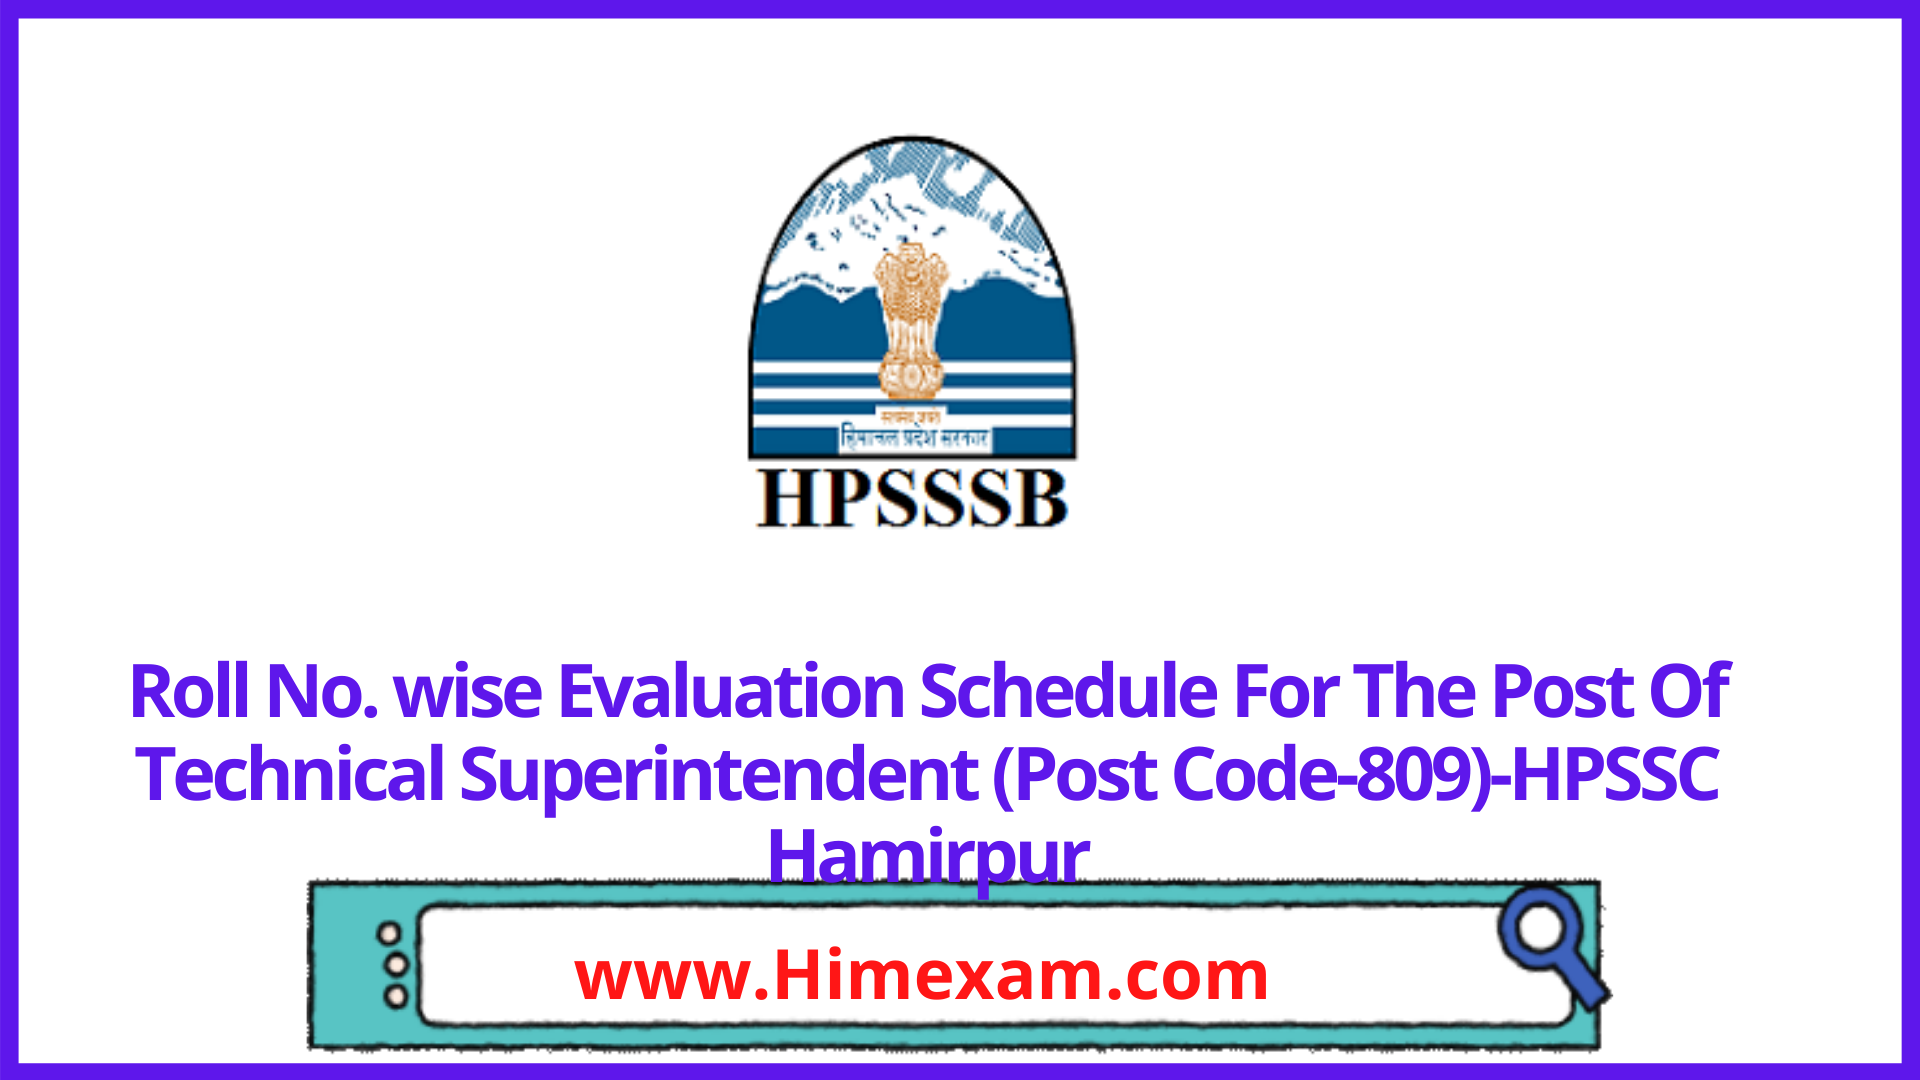 Roll No. wise Evaluation Schedule For The Post Of  Technical Superintendent (Post Code-809)-HPSSC Hamirpur